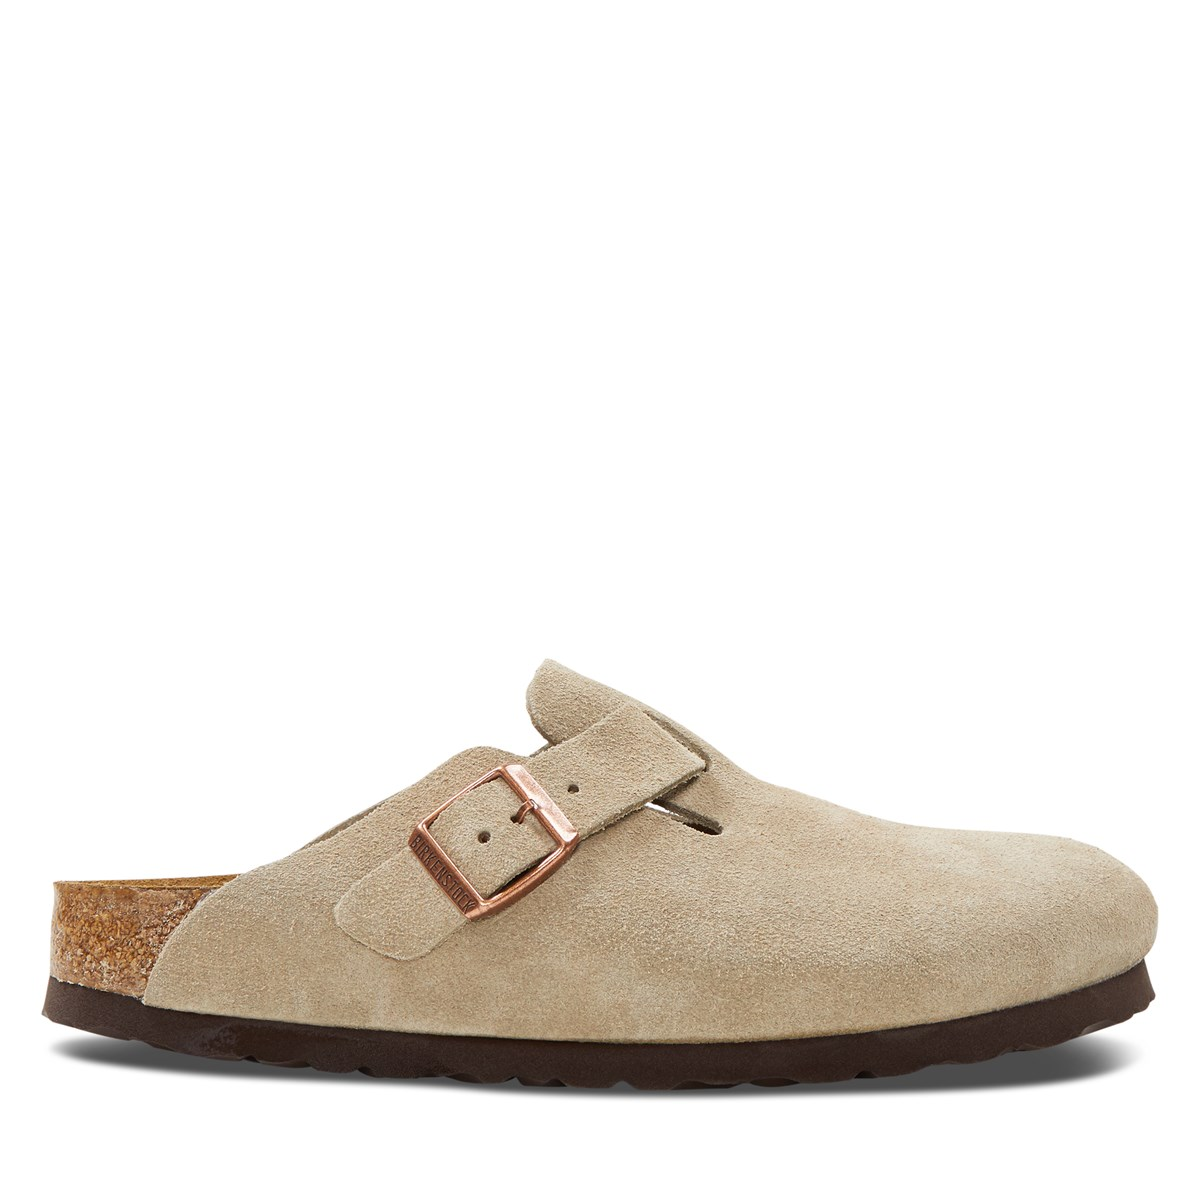 Women's Boston Clogs in Taupe